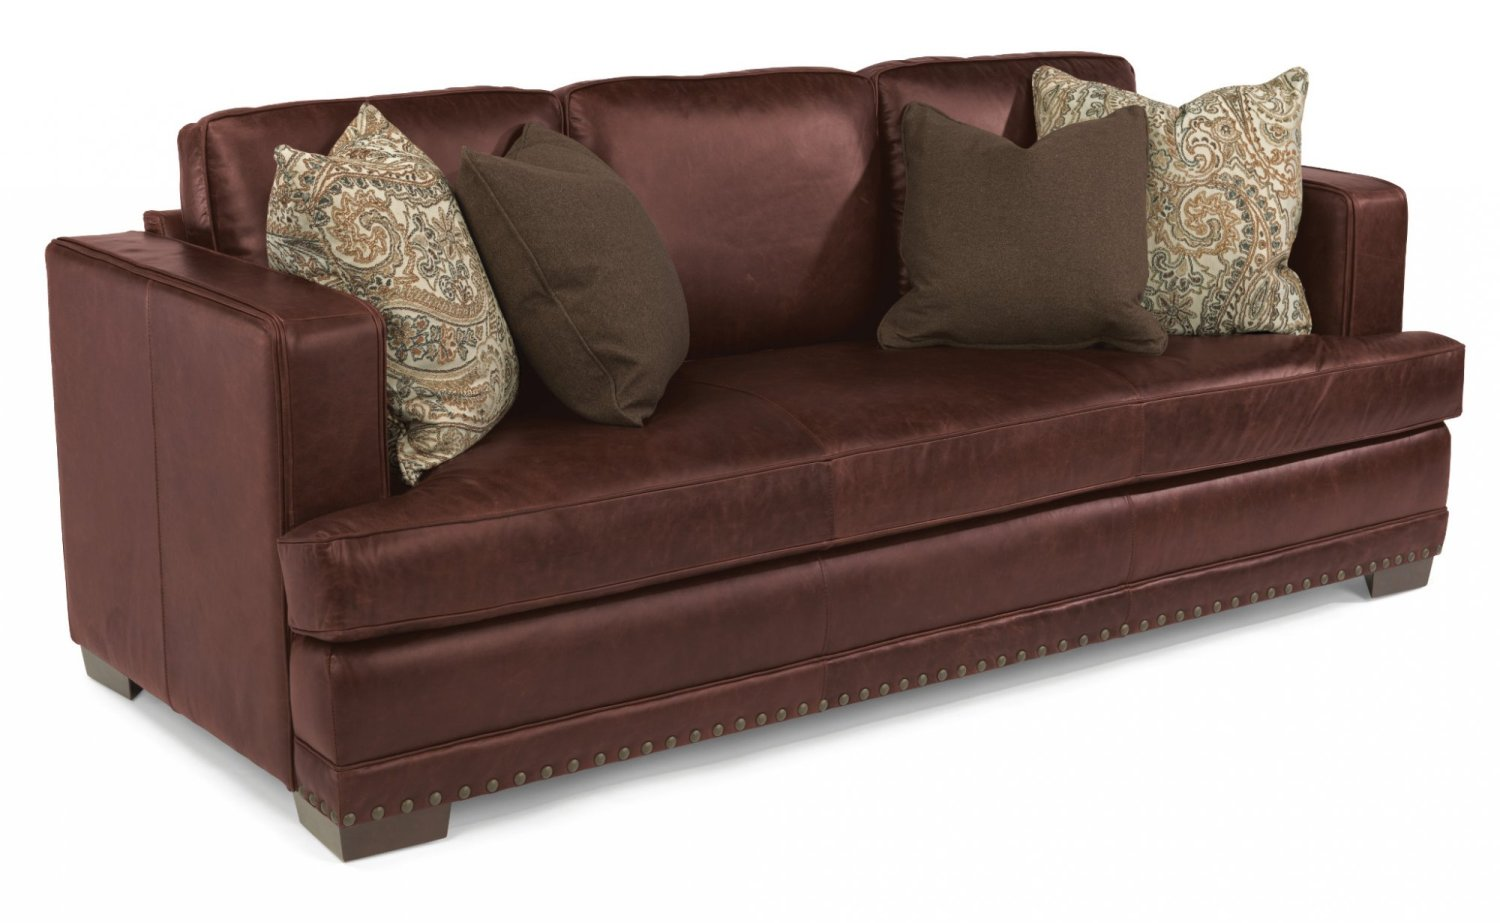 Studded leather sofa studded distressed leather sofa and for Leather studded couch